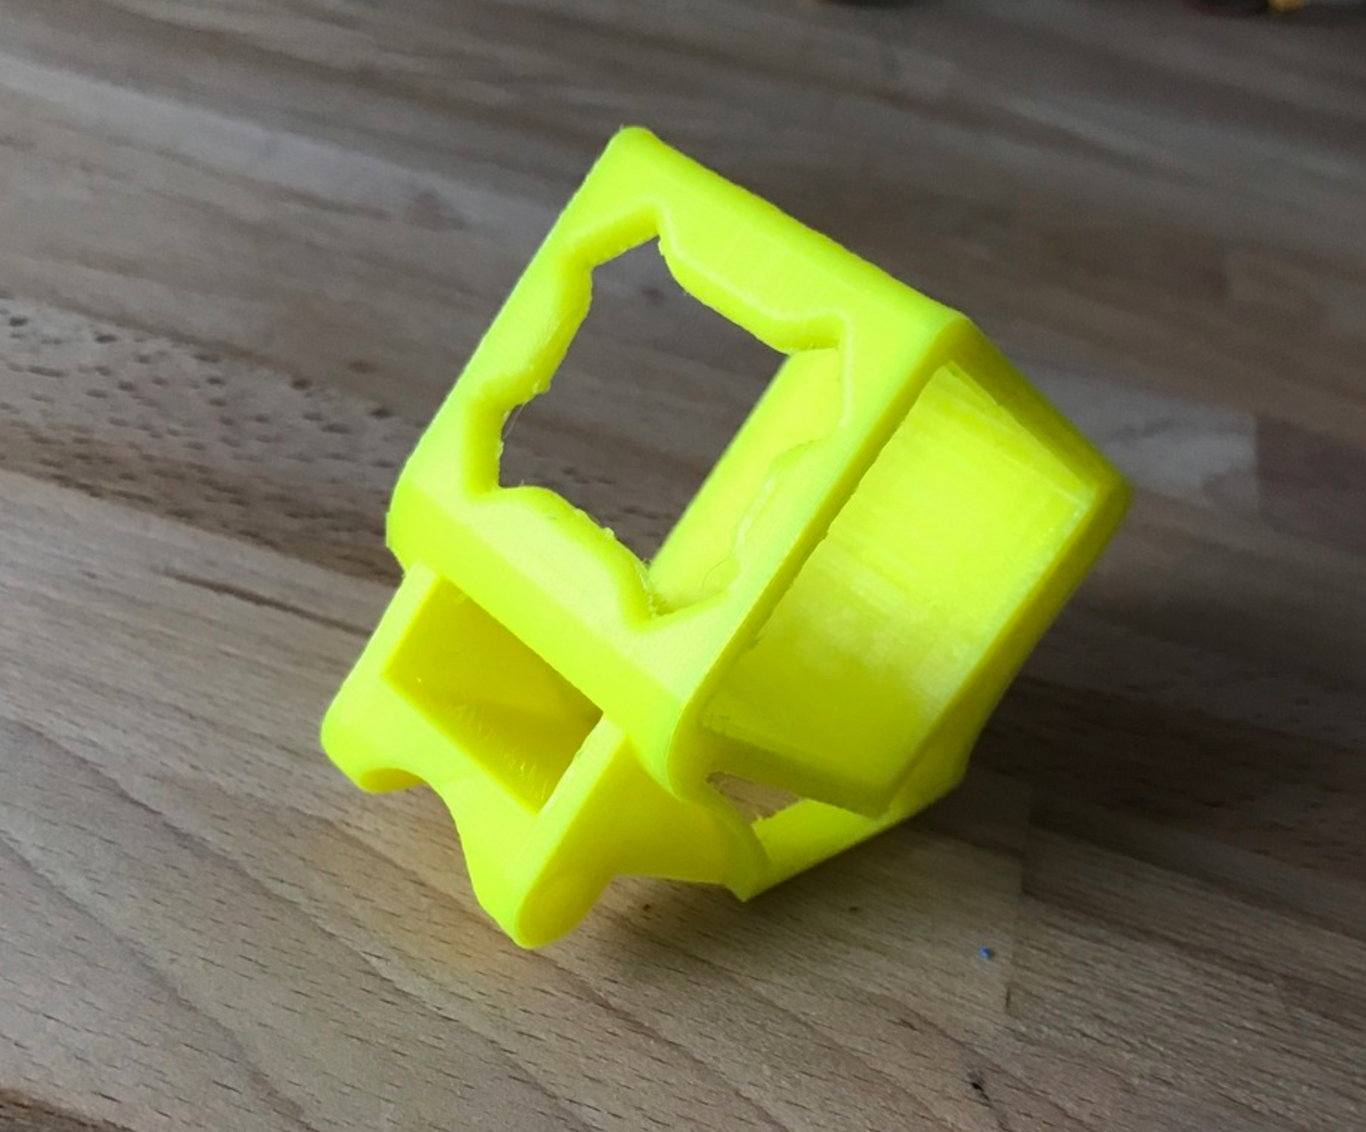 Capture d'écran 2017-06-02 à 14.18.26.png Download free STL file Realacc X210 Gopro Session mount with VTX Vent • Object to 3D print, bromego